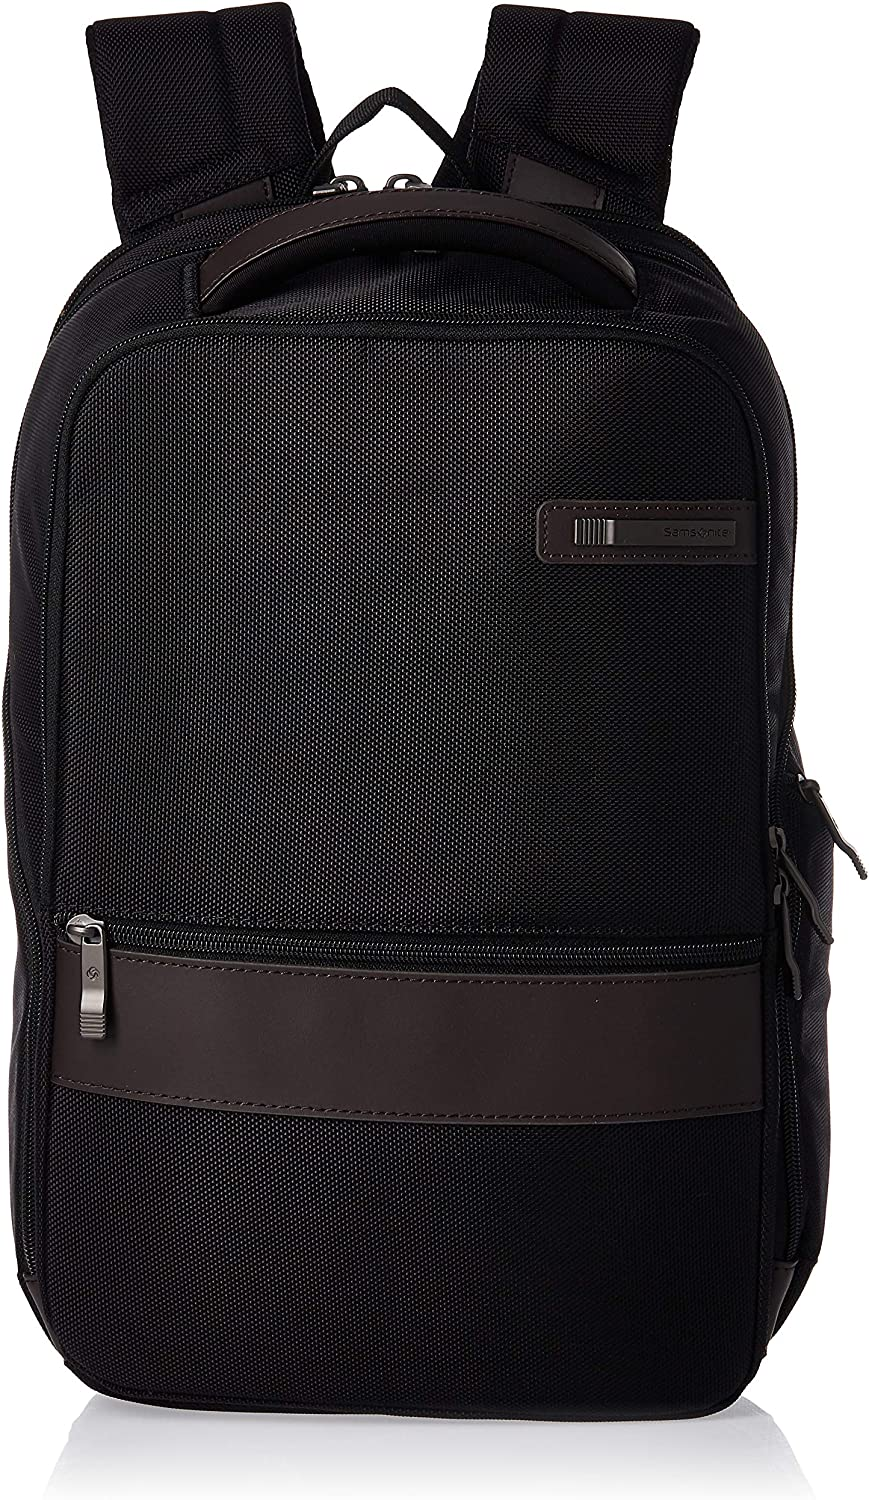 Small Business Backpack for Women